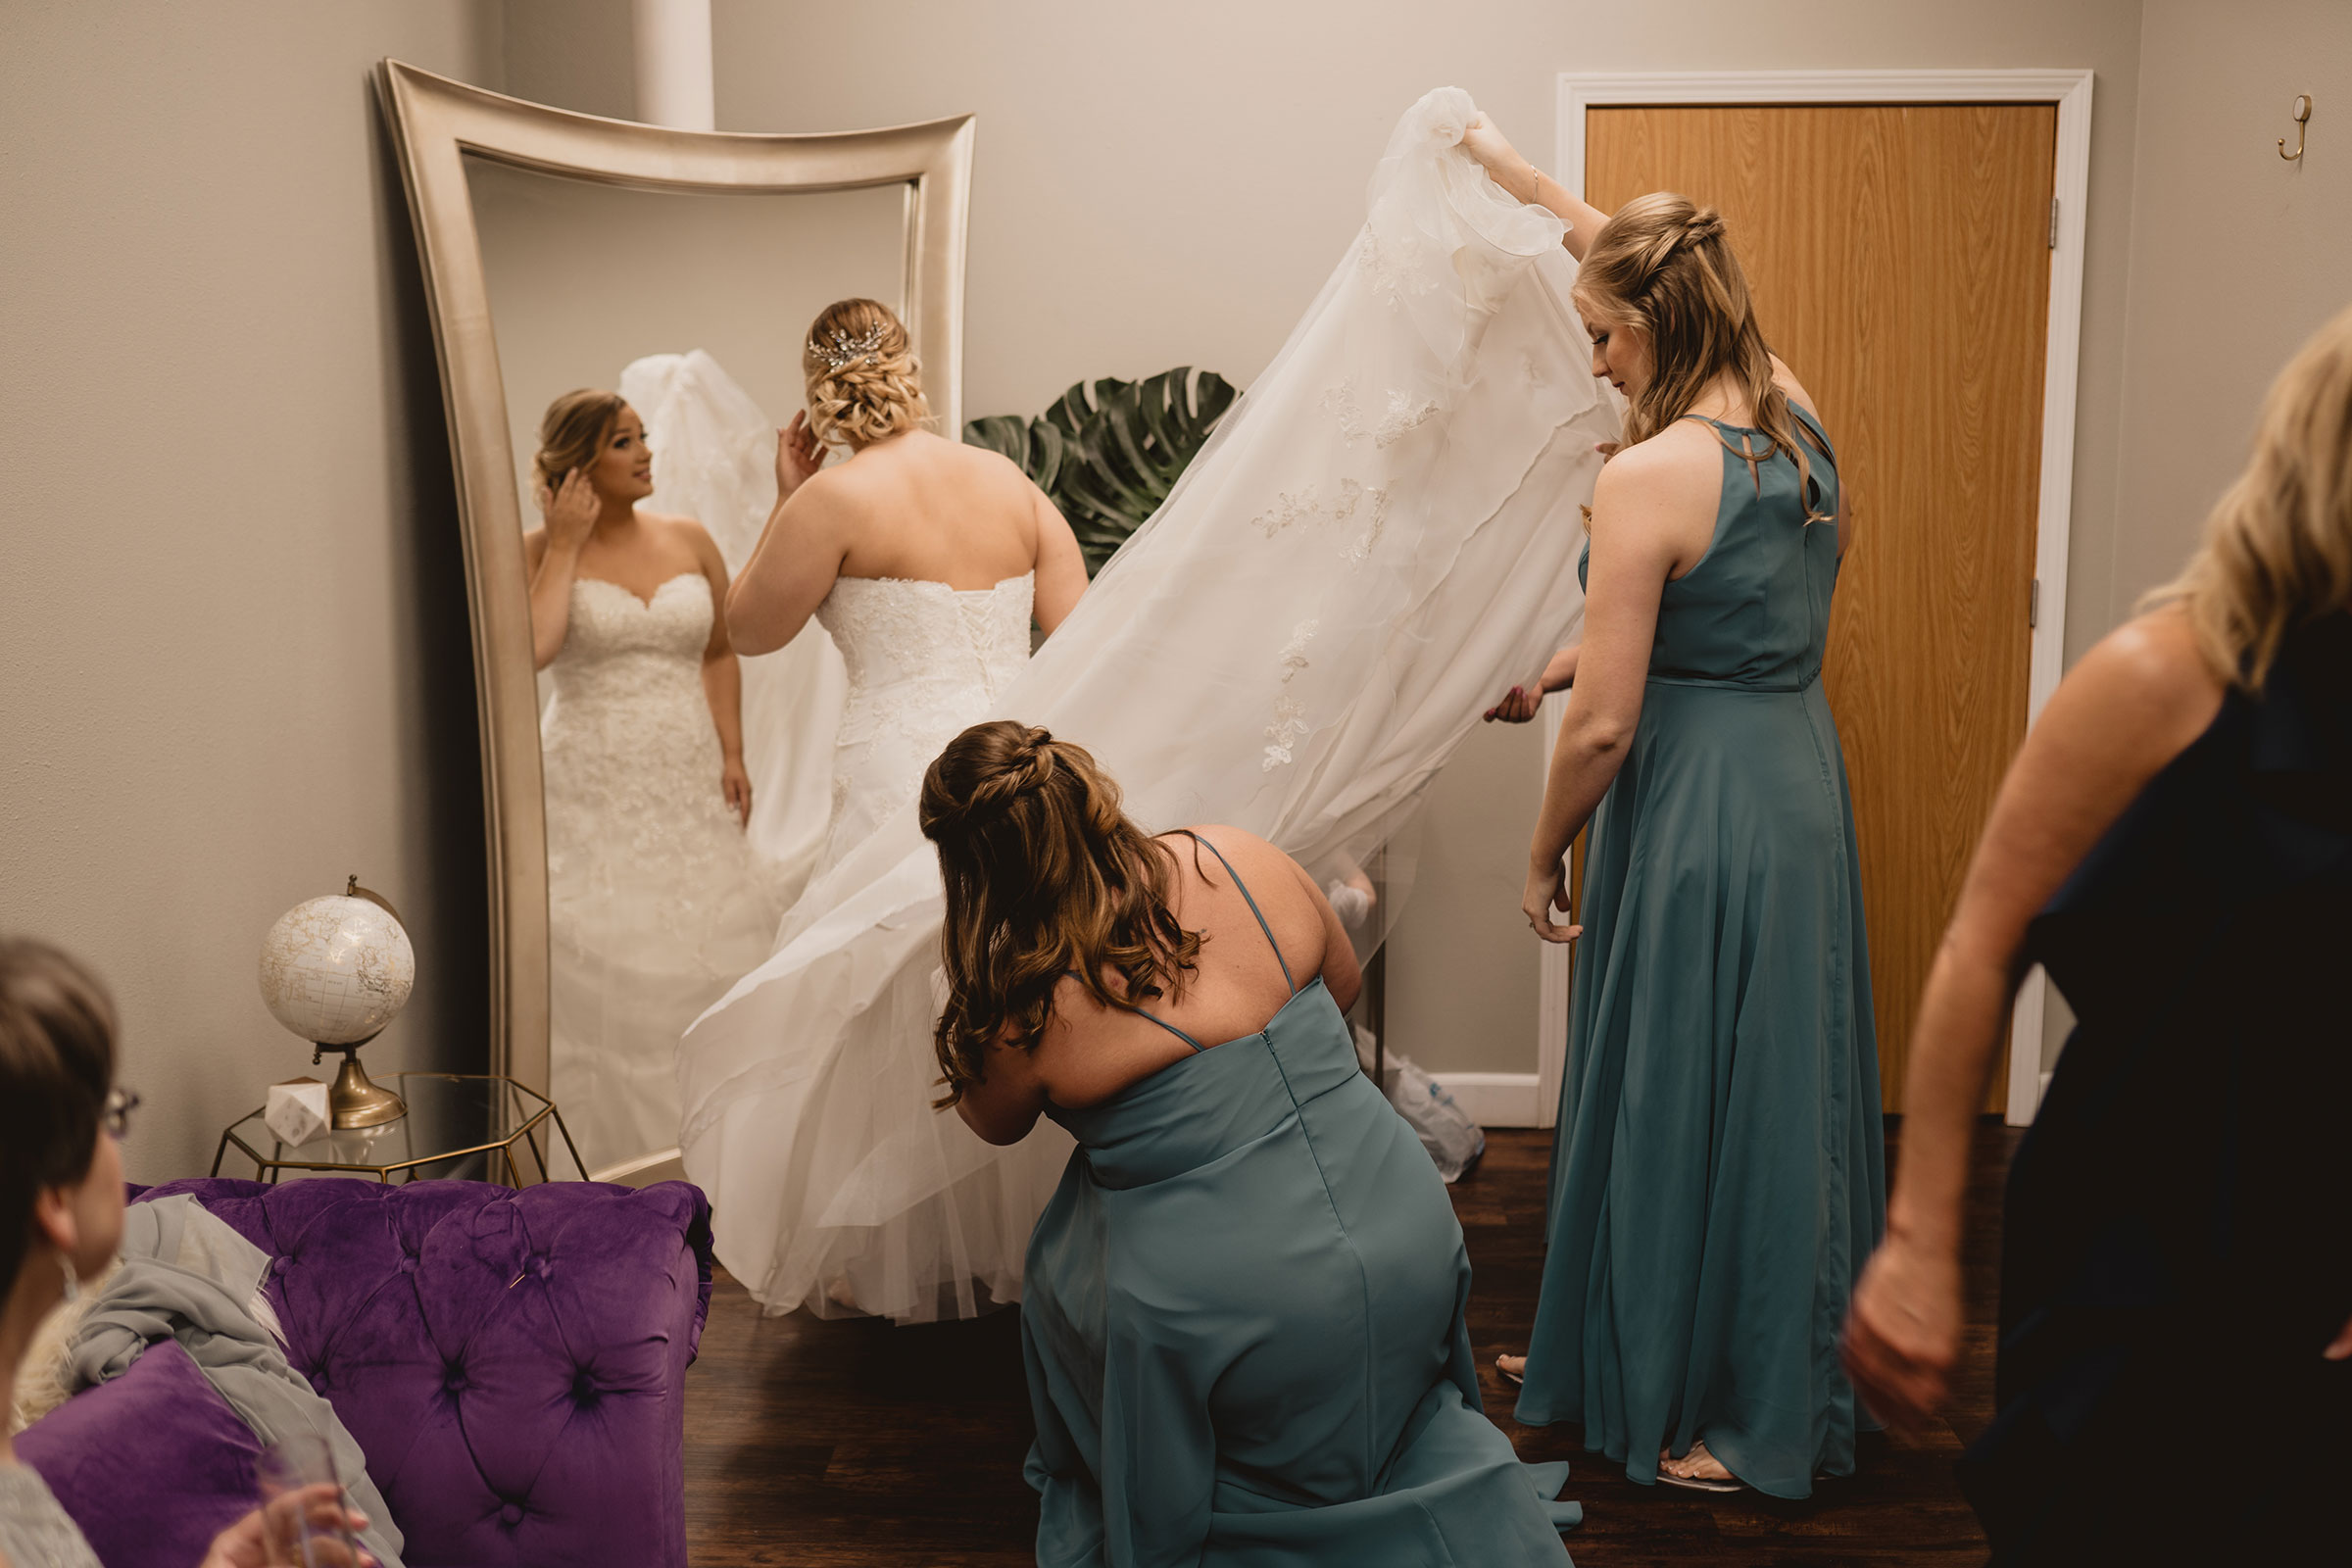 bridesmaids-fluffing-dress-getting-ready-decades-event-center-building-desmoines-iowa-raelyn-ramey-photography..jpg